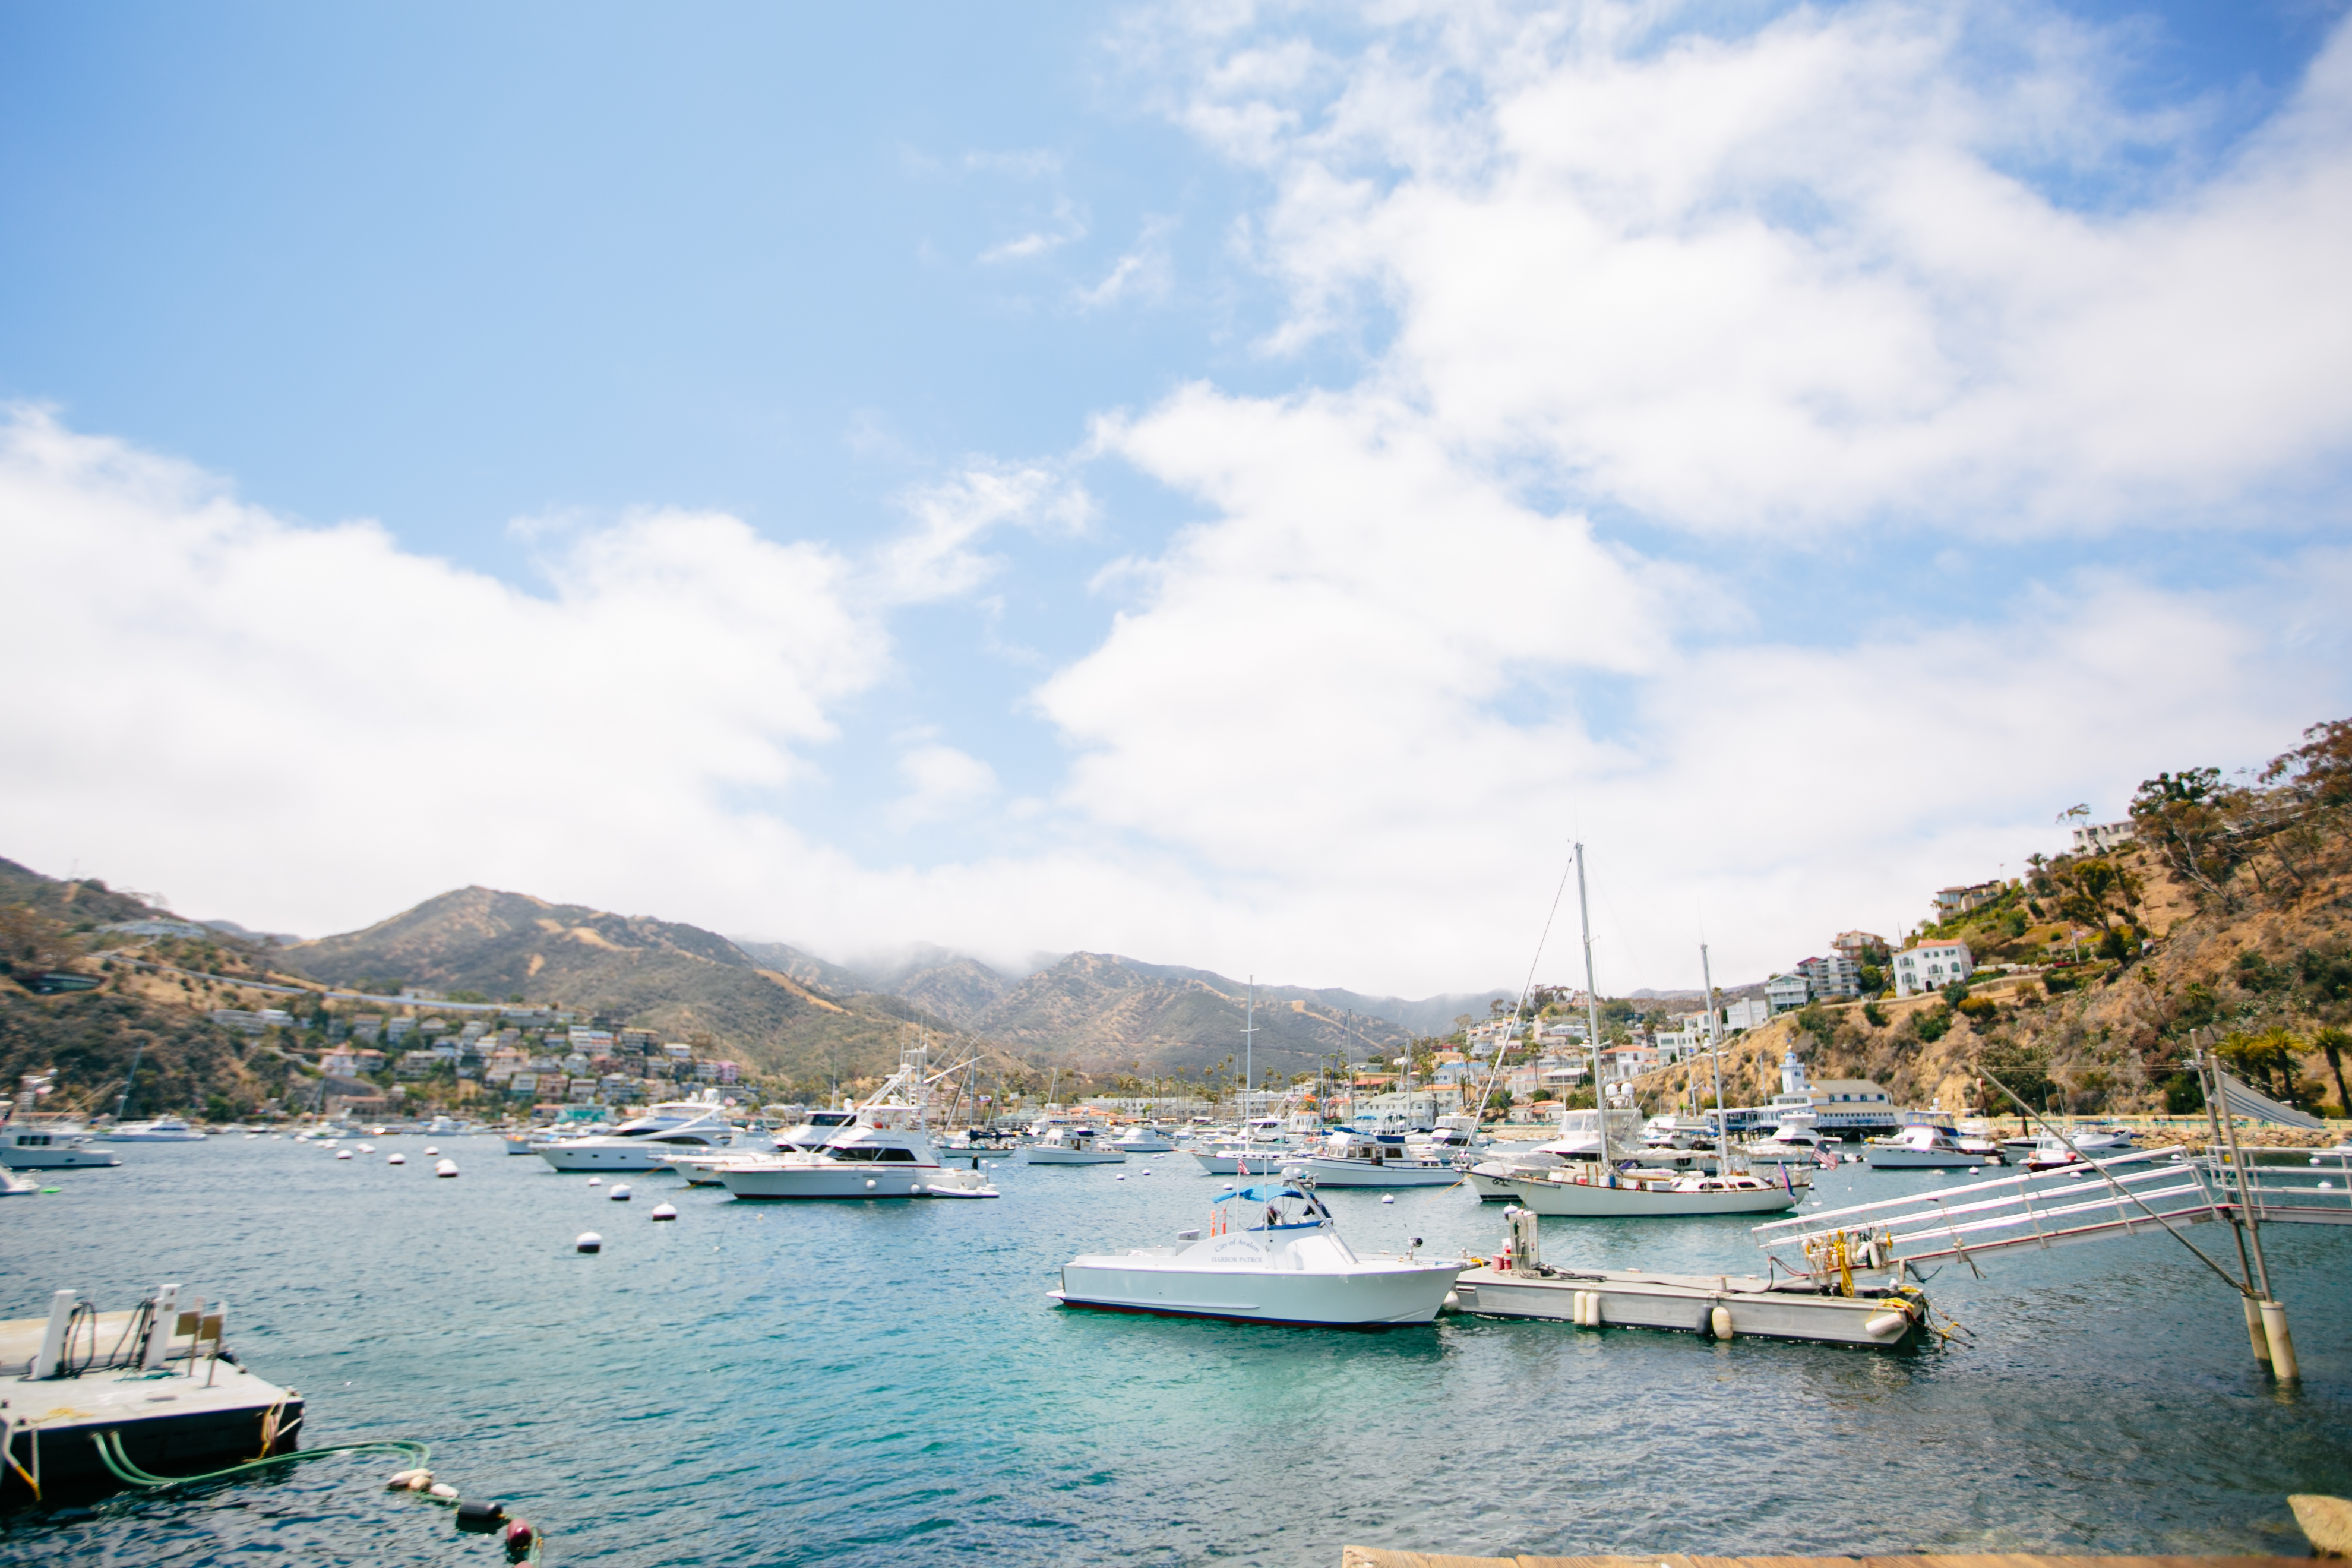 Catalina Island Maps | Visit Catalina Island on map of baghdad, map of scottsdale, map of avalon, map of capri, map of coronado, map of ventura, map of devon, map of victoria, map of florence, map of tonto natural bridge, map of old tucson studios, map of payson, map of northeast tucson, map of grand canyon village, map of east long beach, map of south bay area, map of avondale, map of fogo, map of chandler heights, map of rio rico,